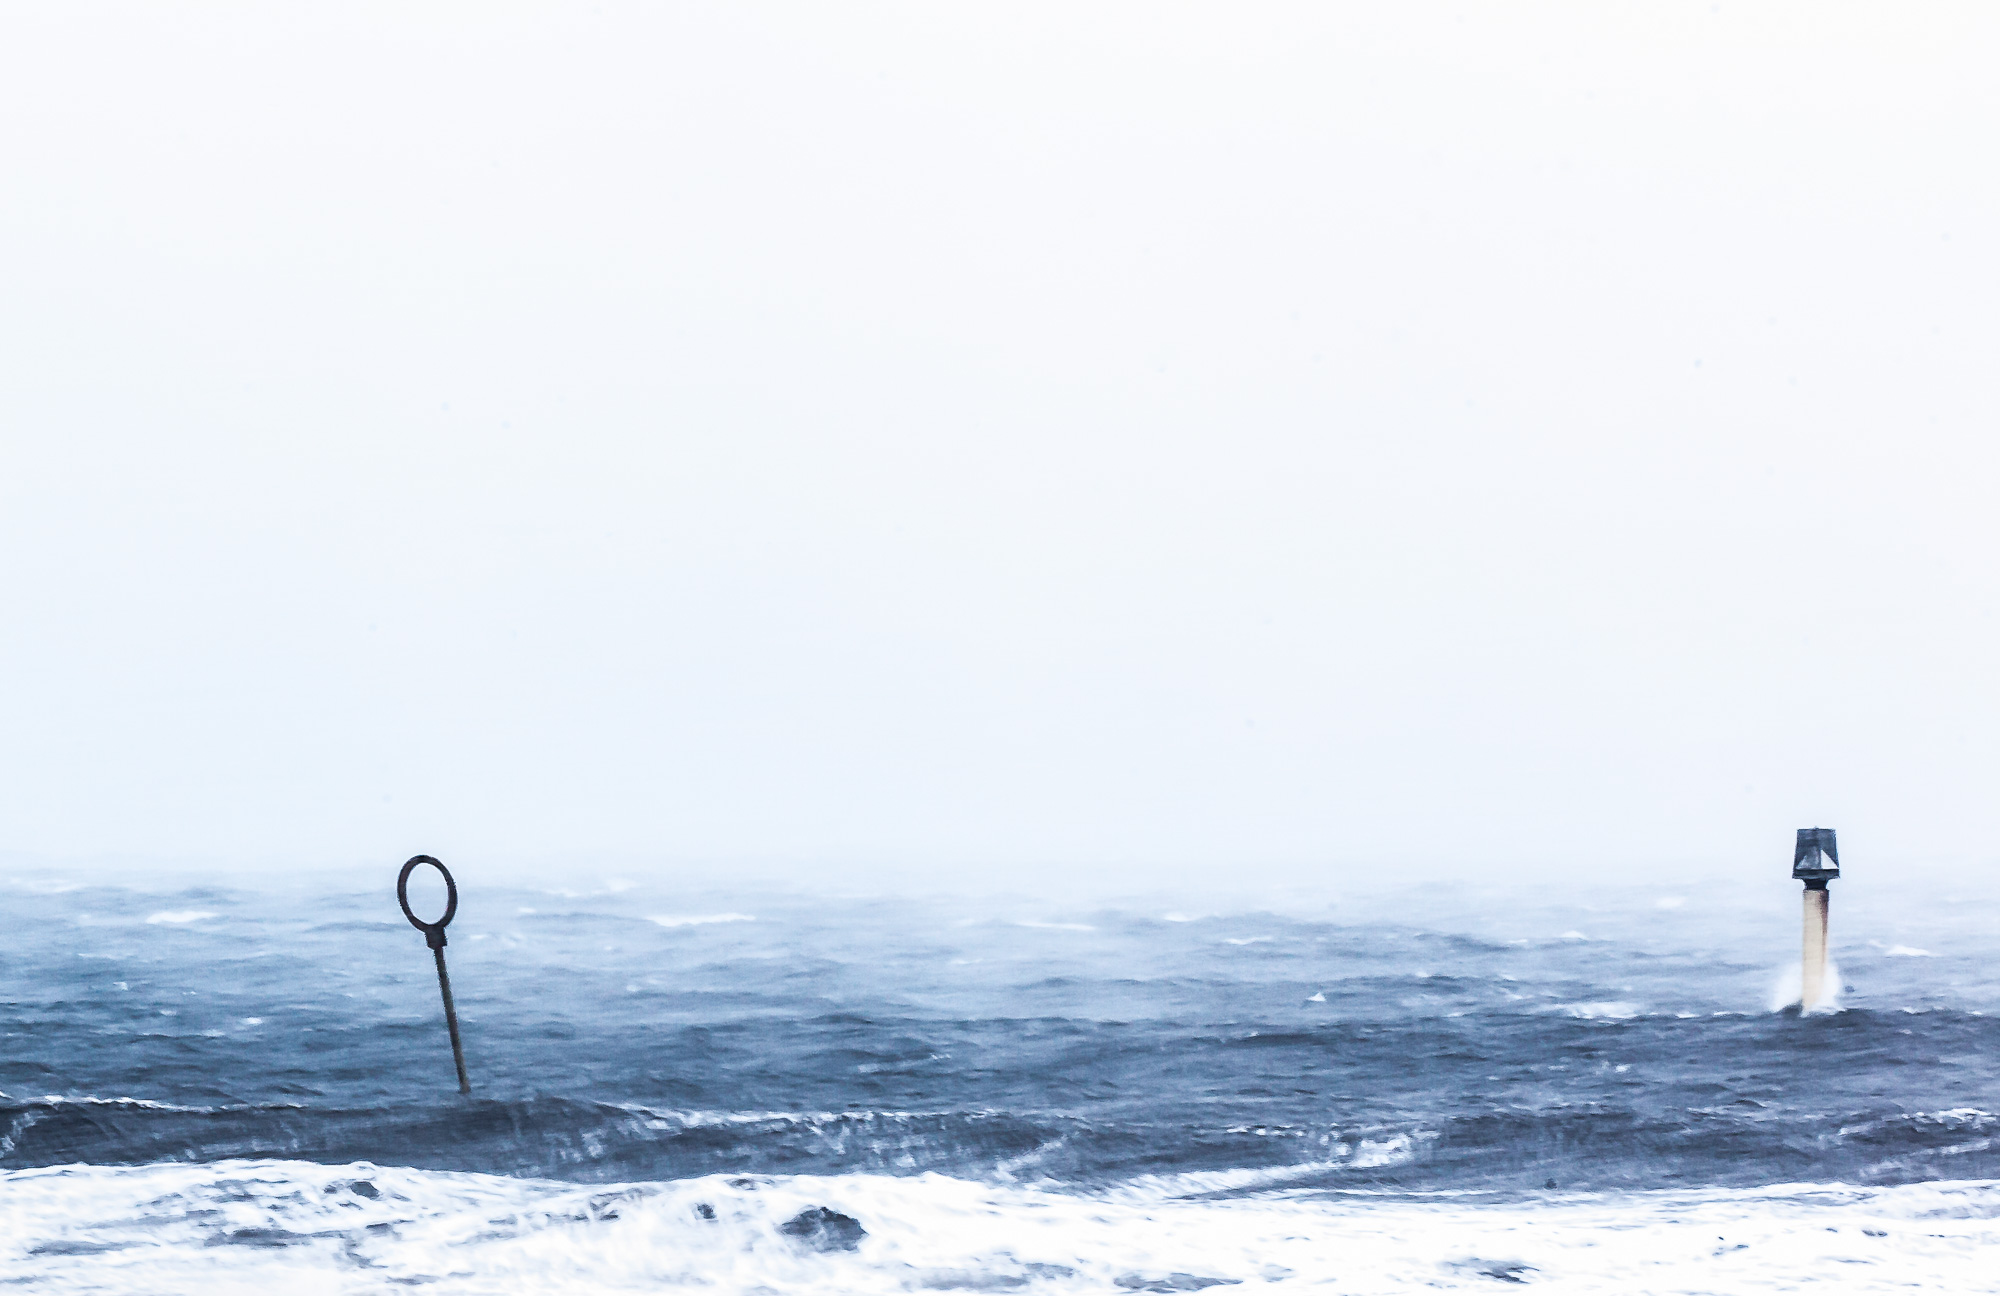 201803_Porty in the storm_Stuart McMillan Photography_004.jpg